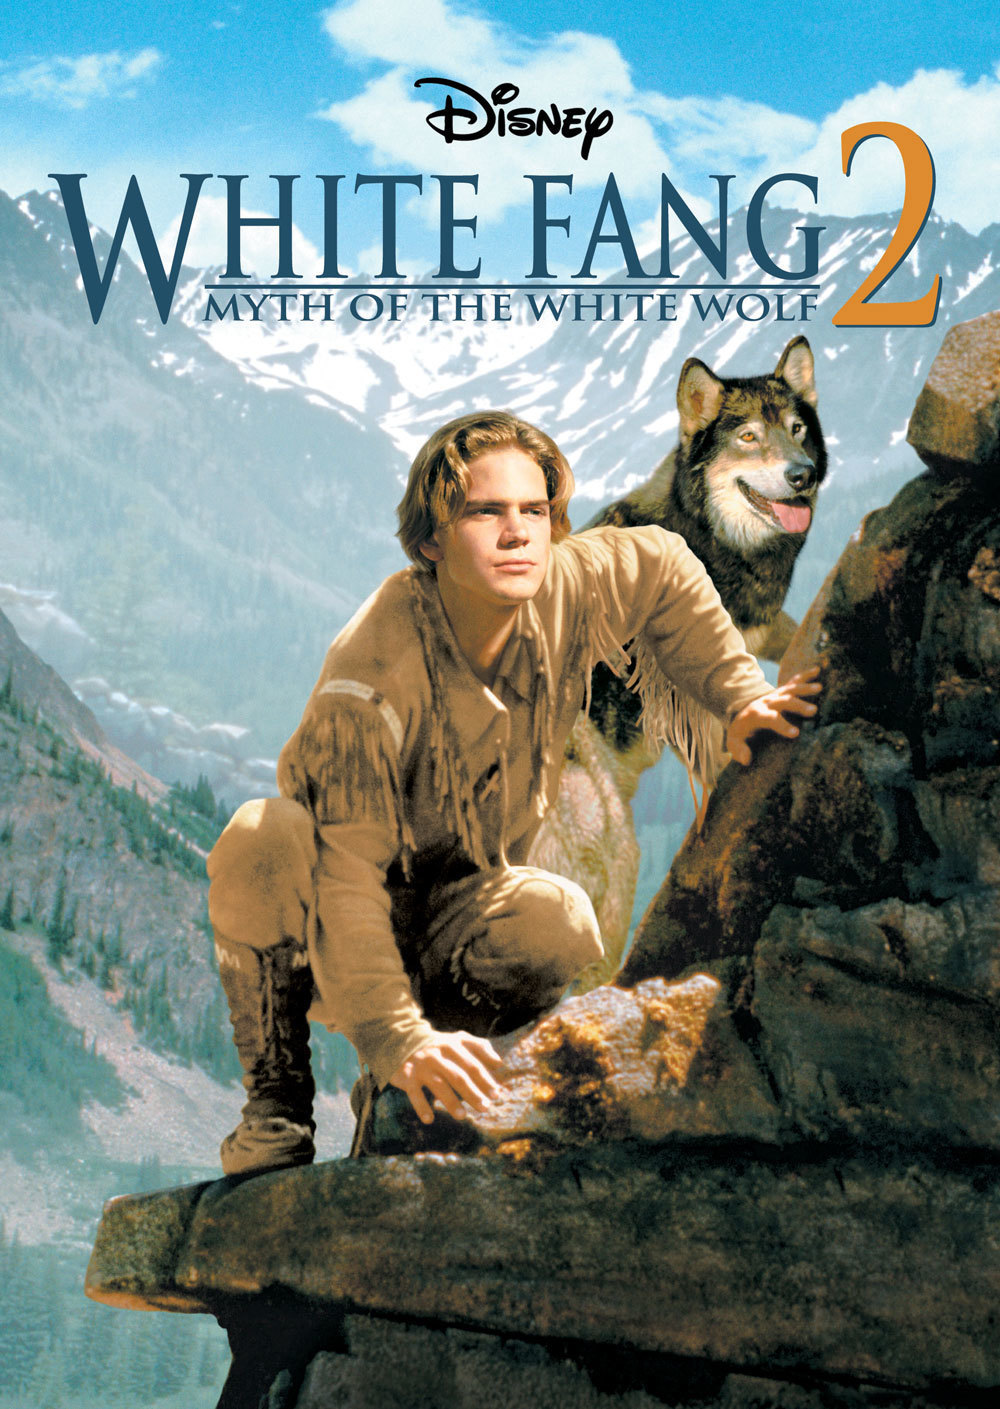 white fang movie download 480p